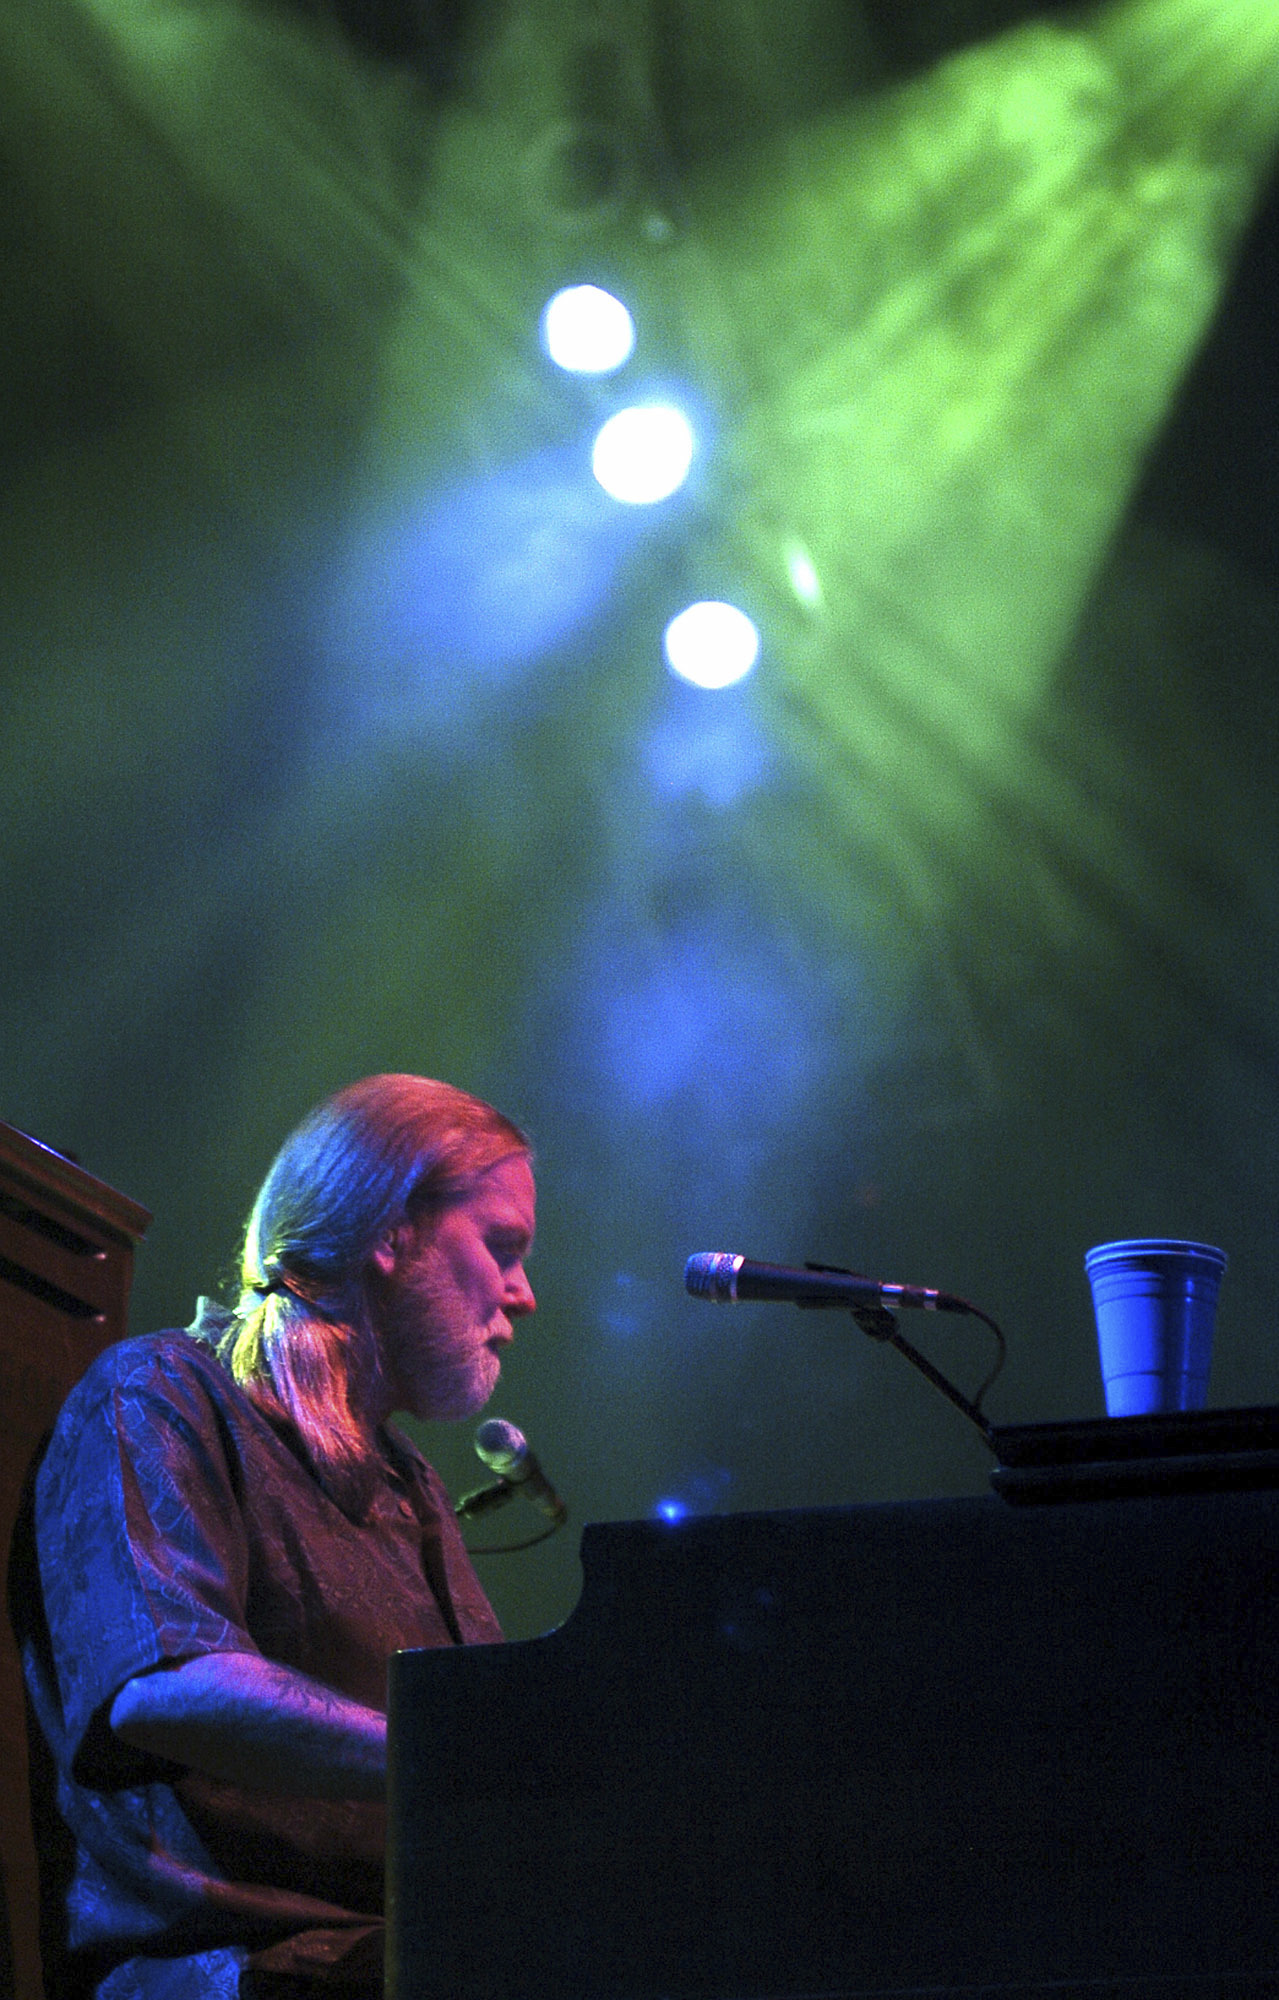 FILE - In this Saturday, Sept. 17, 2005 file photo, Gregg Allman of the Allman Brothers Band performs at the Mid-America Center in Council Bluffs, Iowa, as part of their Antigone Rising Tour. On Saturday, May 27, 2017, a publicist said the musician, the singer for The Allman Brothers Band, has died. (AP Photo/The Daily Nonpareil, Ben DeVries)